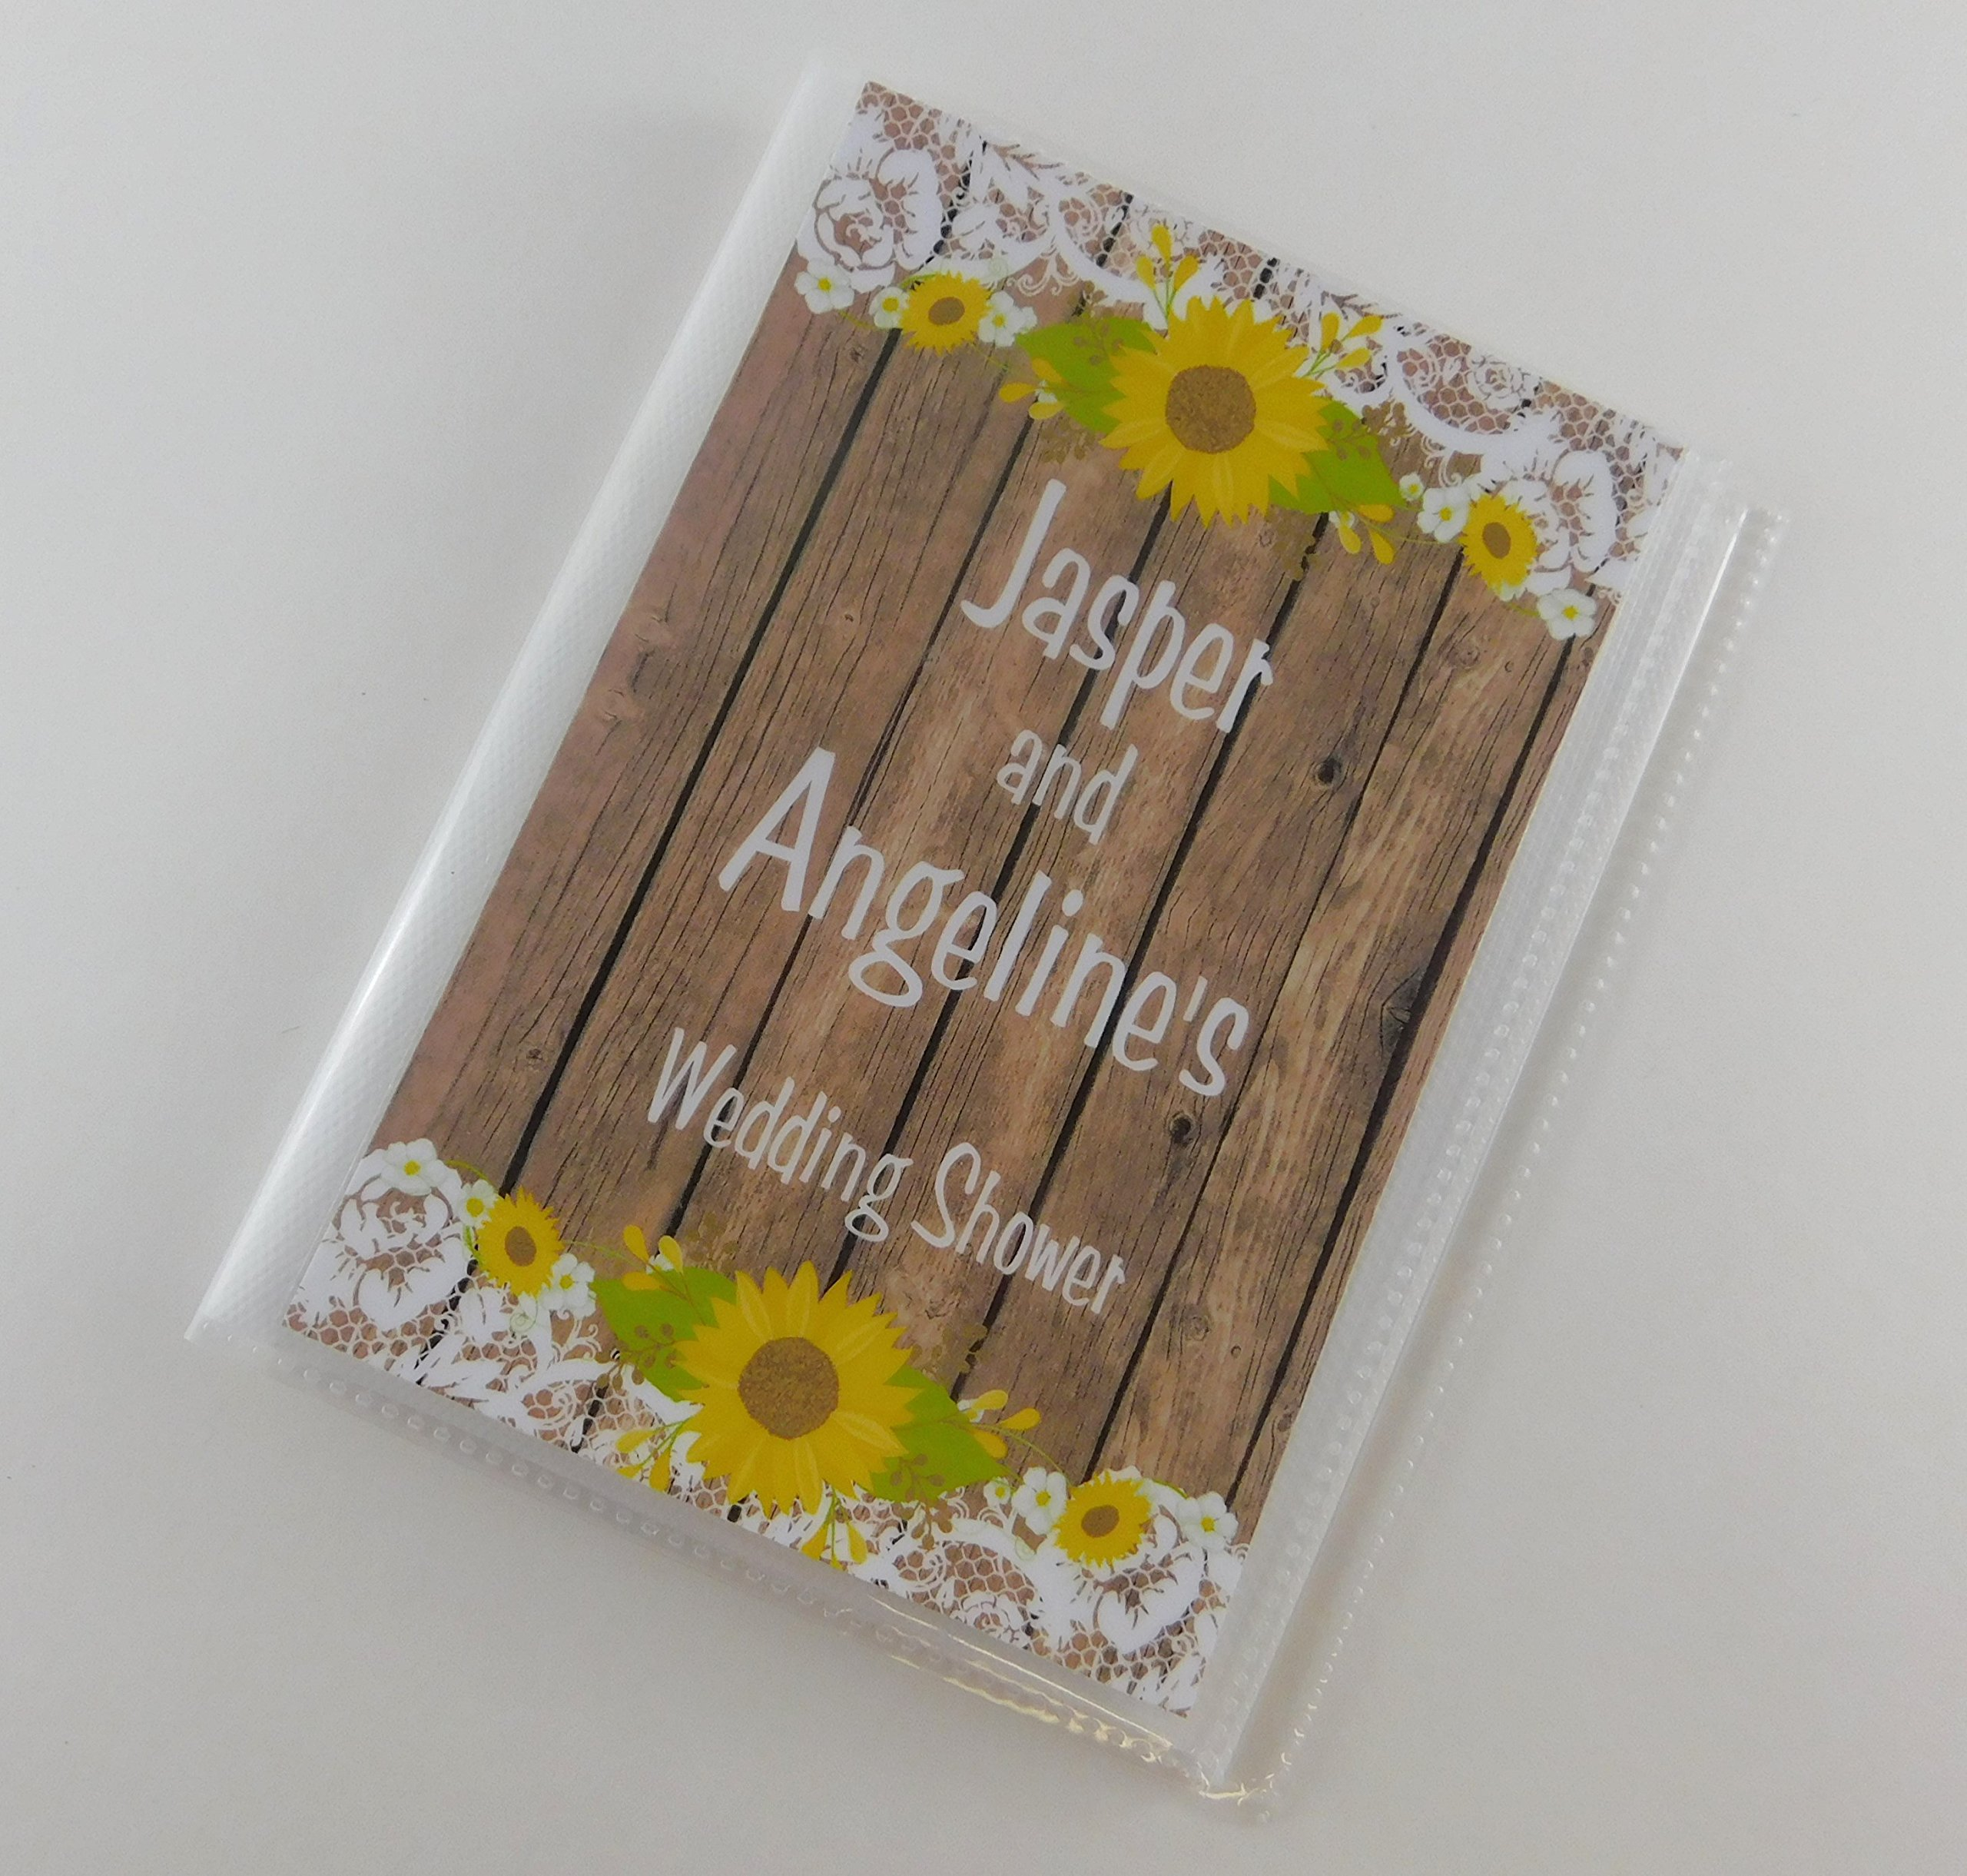 Photo Album Wedding IA#919 Engagement Anniversary Advice Cards Bridal Shower Gift 4x6 or 5x7 Picture NOT REAL Wood Sunflower Lace